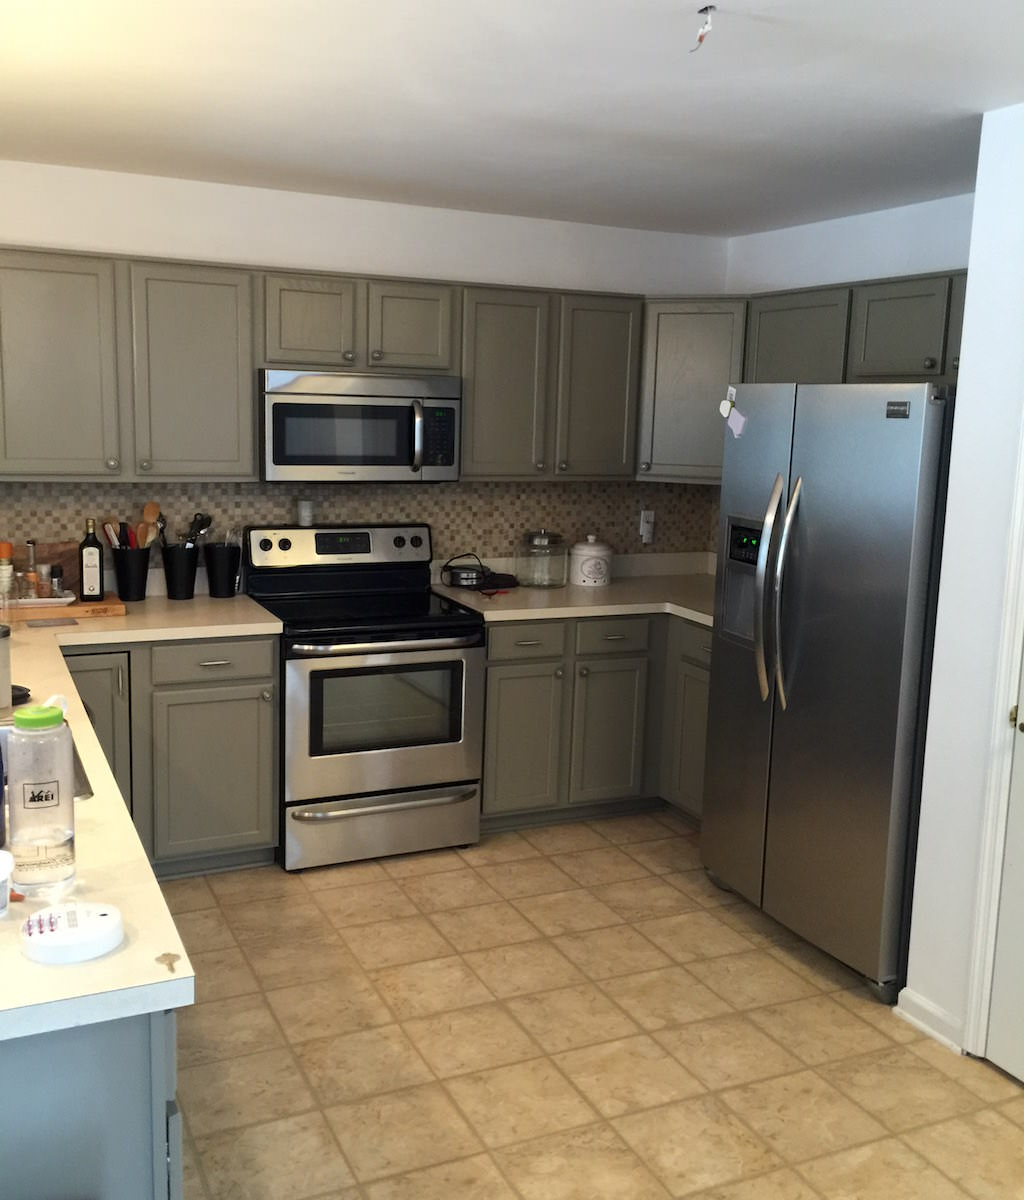 East Norriton Kitchen Painting - After 1